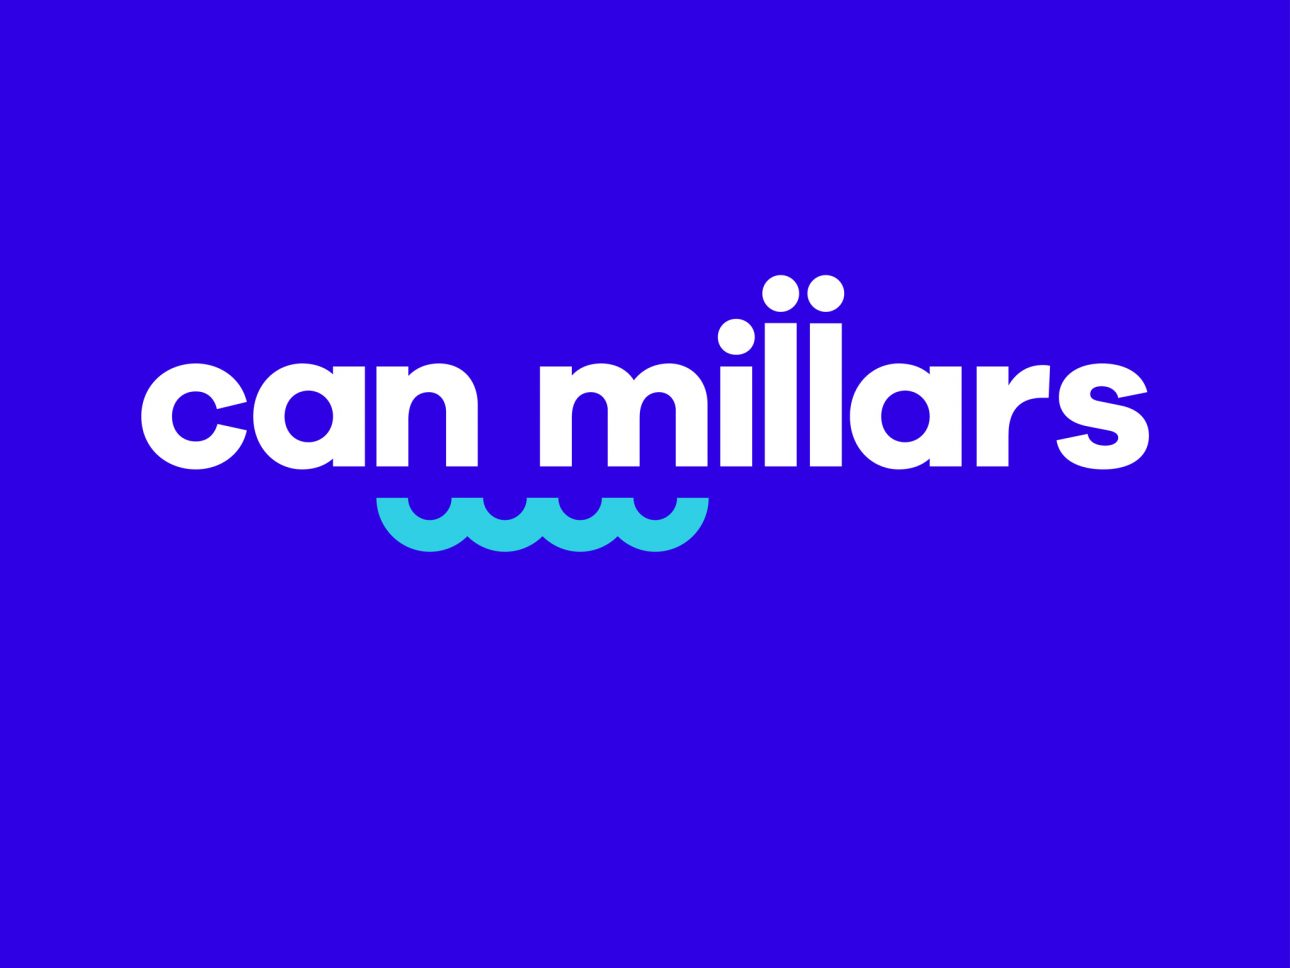 SD_CAN-MILLARS_05